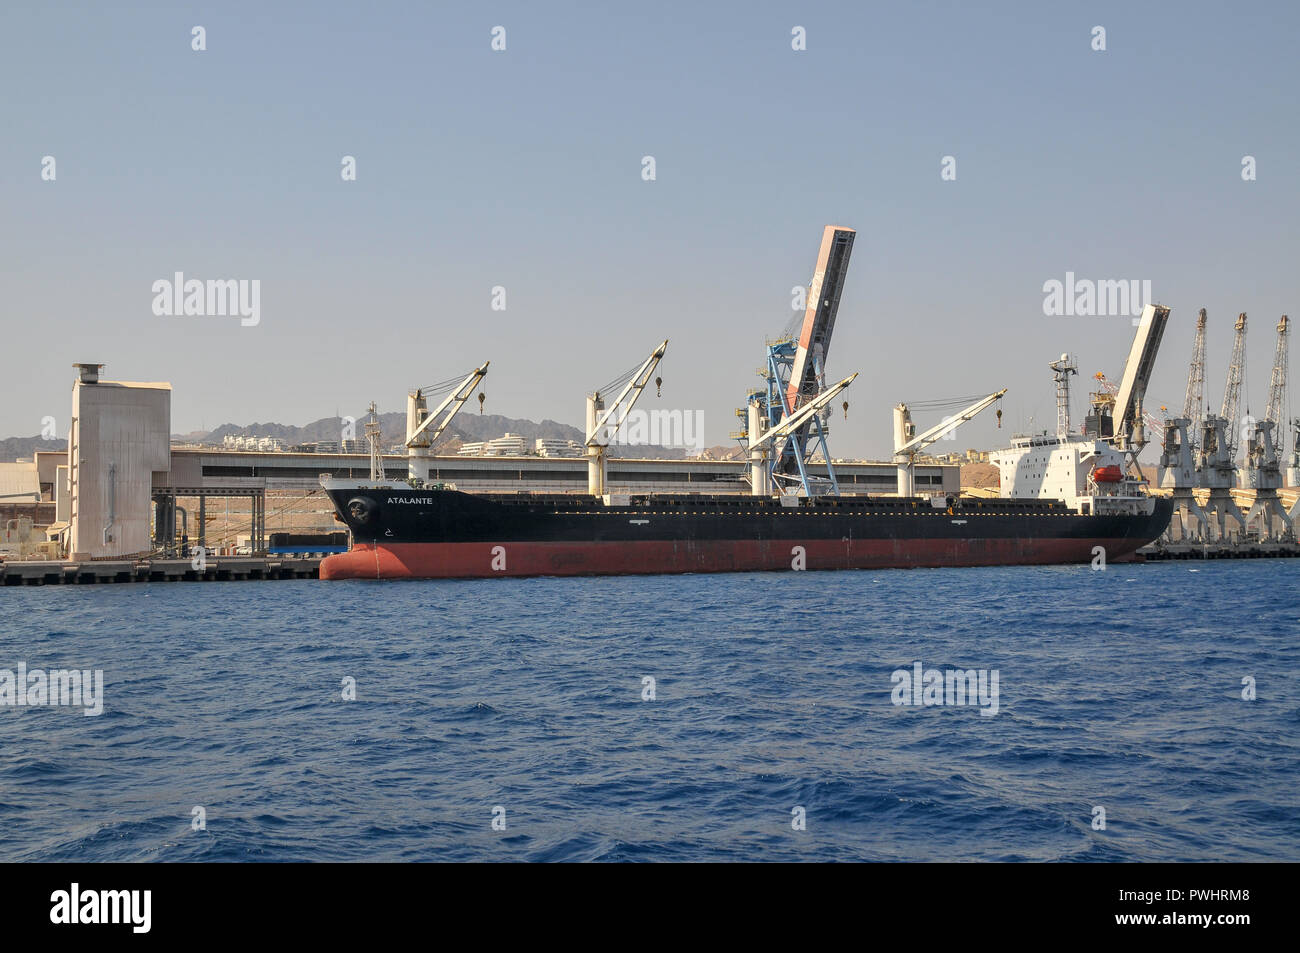 Ships at the Port of Eilat in the Red Sea, Israel - Stock Image